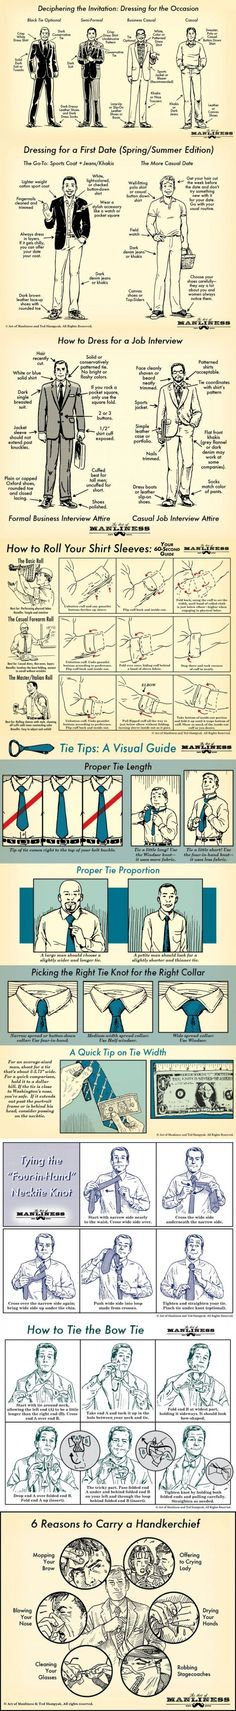 Cool infographic show how a man should dress which give tips and tricks on getting the perfect look. #tuxedo #style #styleformen #fashionformen #menstyle #suit #bowtie #tie #instafashion #fashion #SS15 #moda #blogmode #modehomme #fashionbloggeur #dapper #menstyle #elegant #smart #suitandties #classy #business #homme #smartlook #gentlook #menwithstyle #suitup #style #mytailorisfree #outfit #springfashion #quote #fashionquote #gentquote #gentlemen